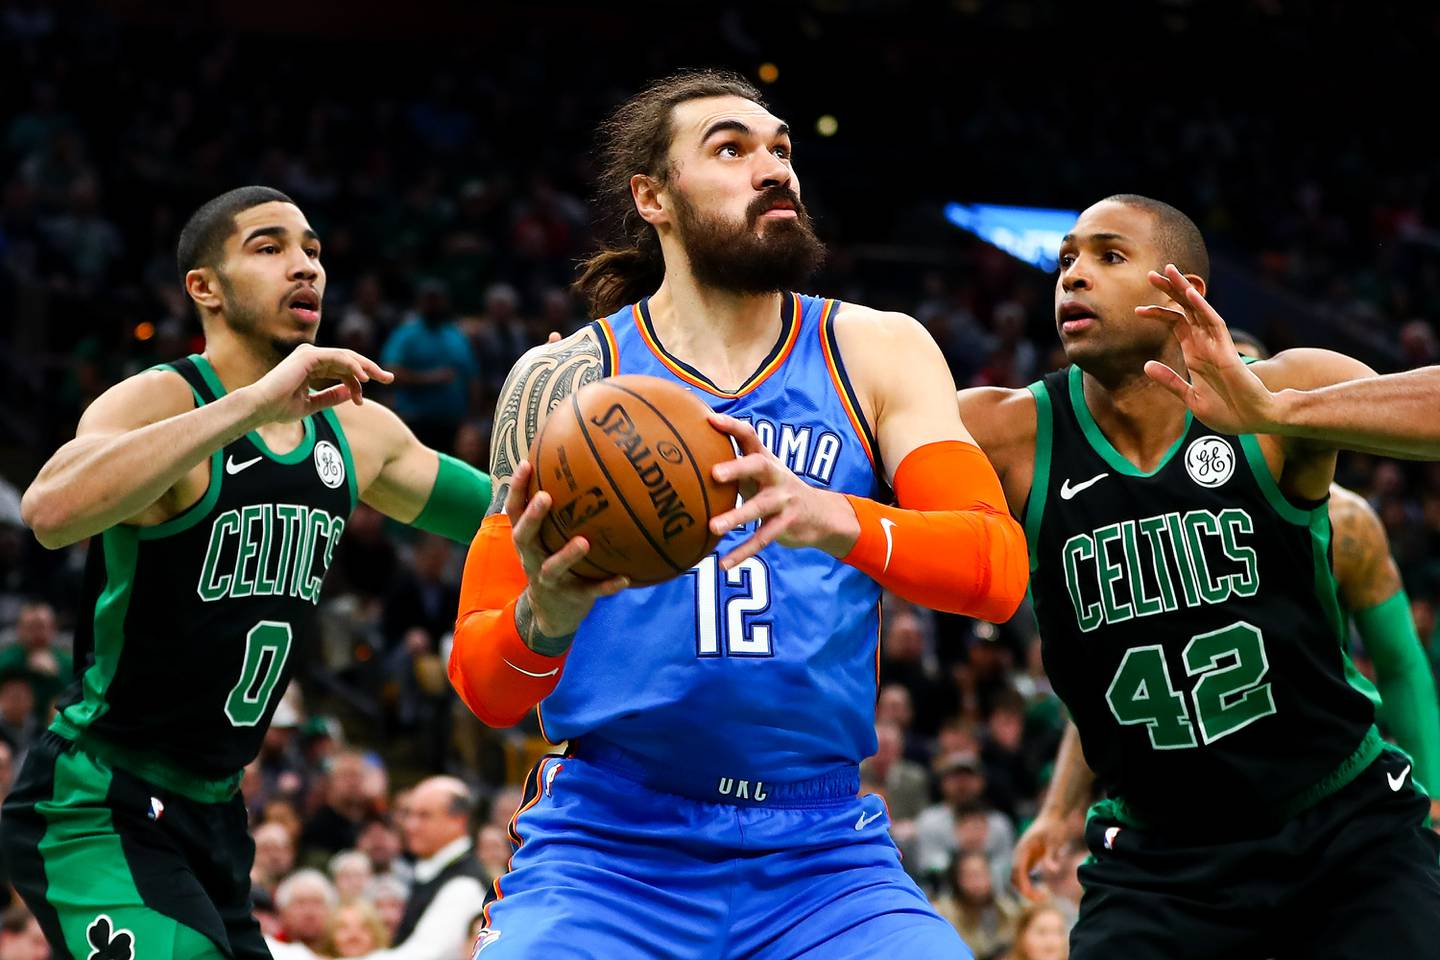 BOSTON, MA - FEBRUARY 03:  Steven Adams #12 of the Oklahoma City Thunder goes for a layup while guarded by Jayson Tatum #0 and Al Horford #42 of the Boston Celtics during a game at TD Garden on February 3, 2019 in Boston, Massachusetts. NOTE TO USER: User expressly acknowledges and agrees that, by downloading and or using this photograph, User is consenting to the terms and conditions of the Getty Images License Agreement. (Photo by Adam Glanzman/Getty Images)